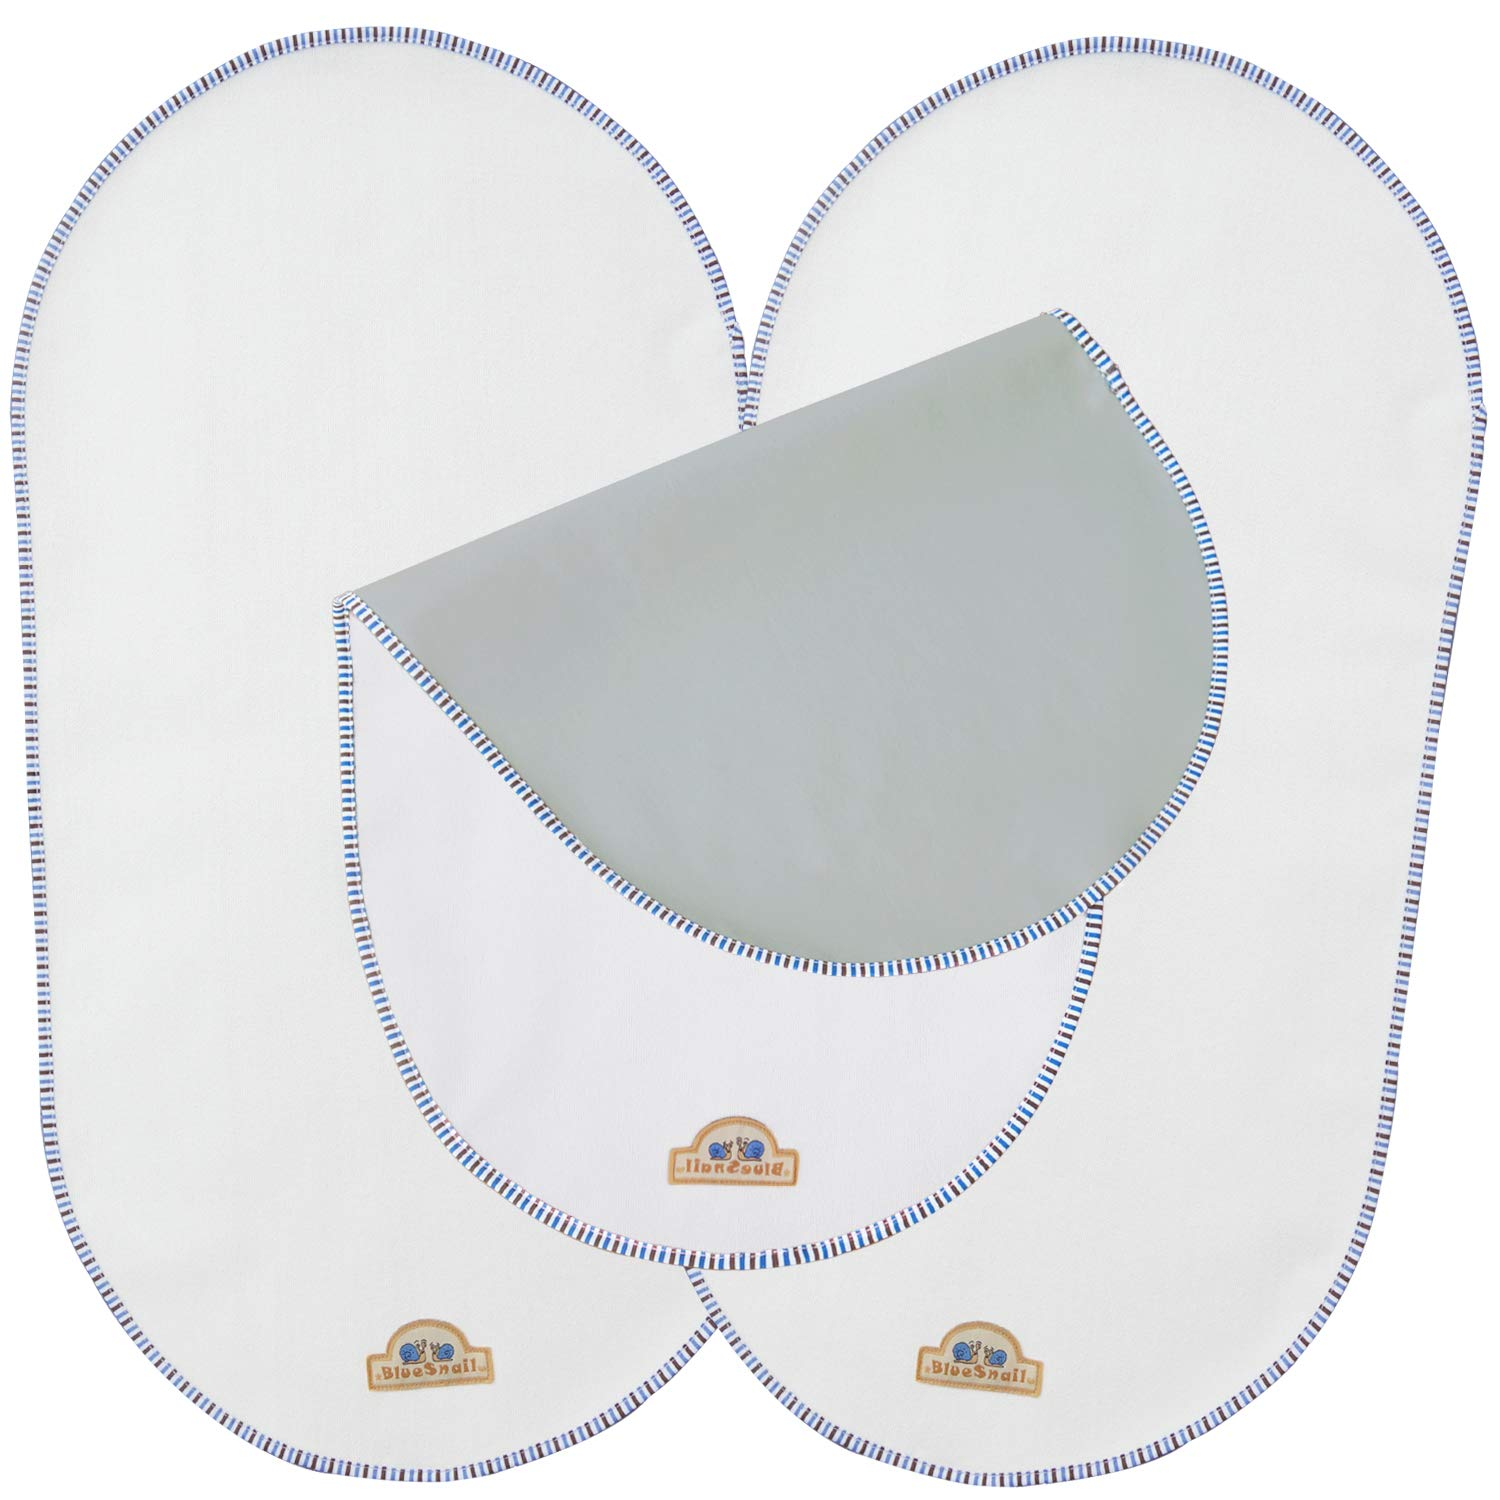 """BlueSnail Waterproof Changing Pad Liners for Babies 3 Count (White, 13.3""""x26"""")"""